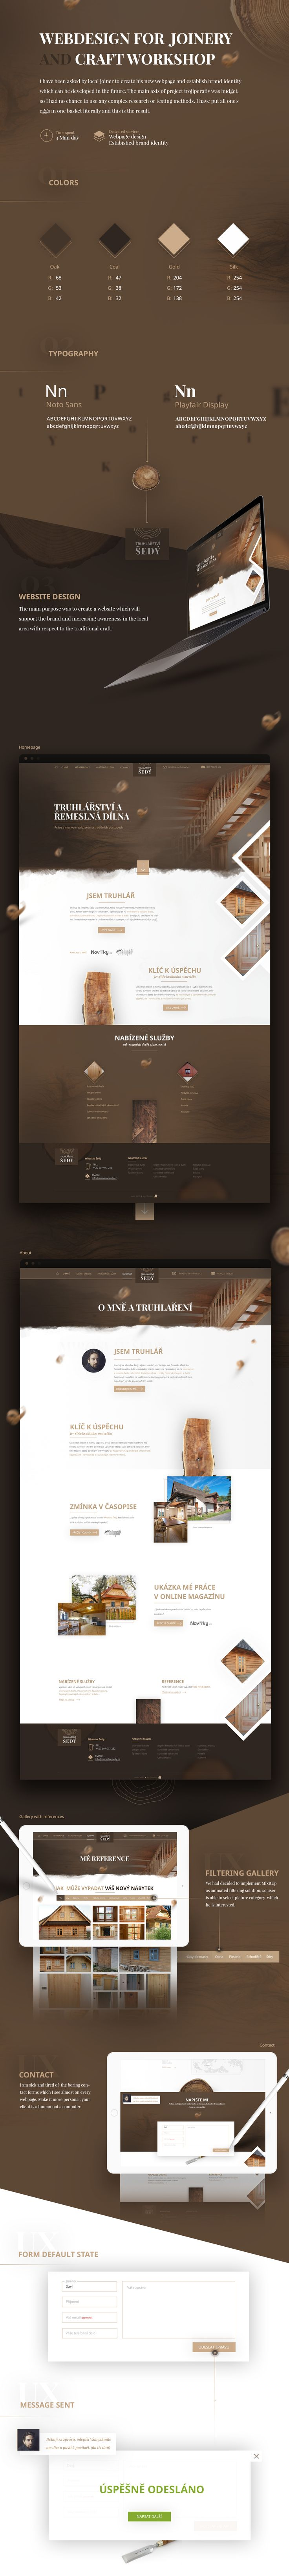 Webdesign for Joinery and local workshop